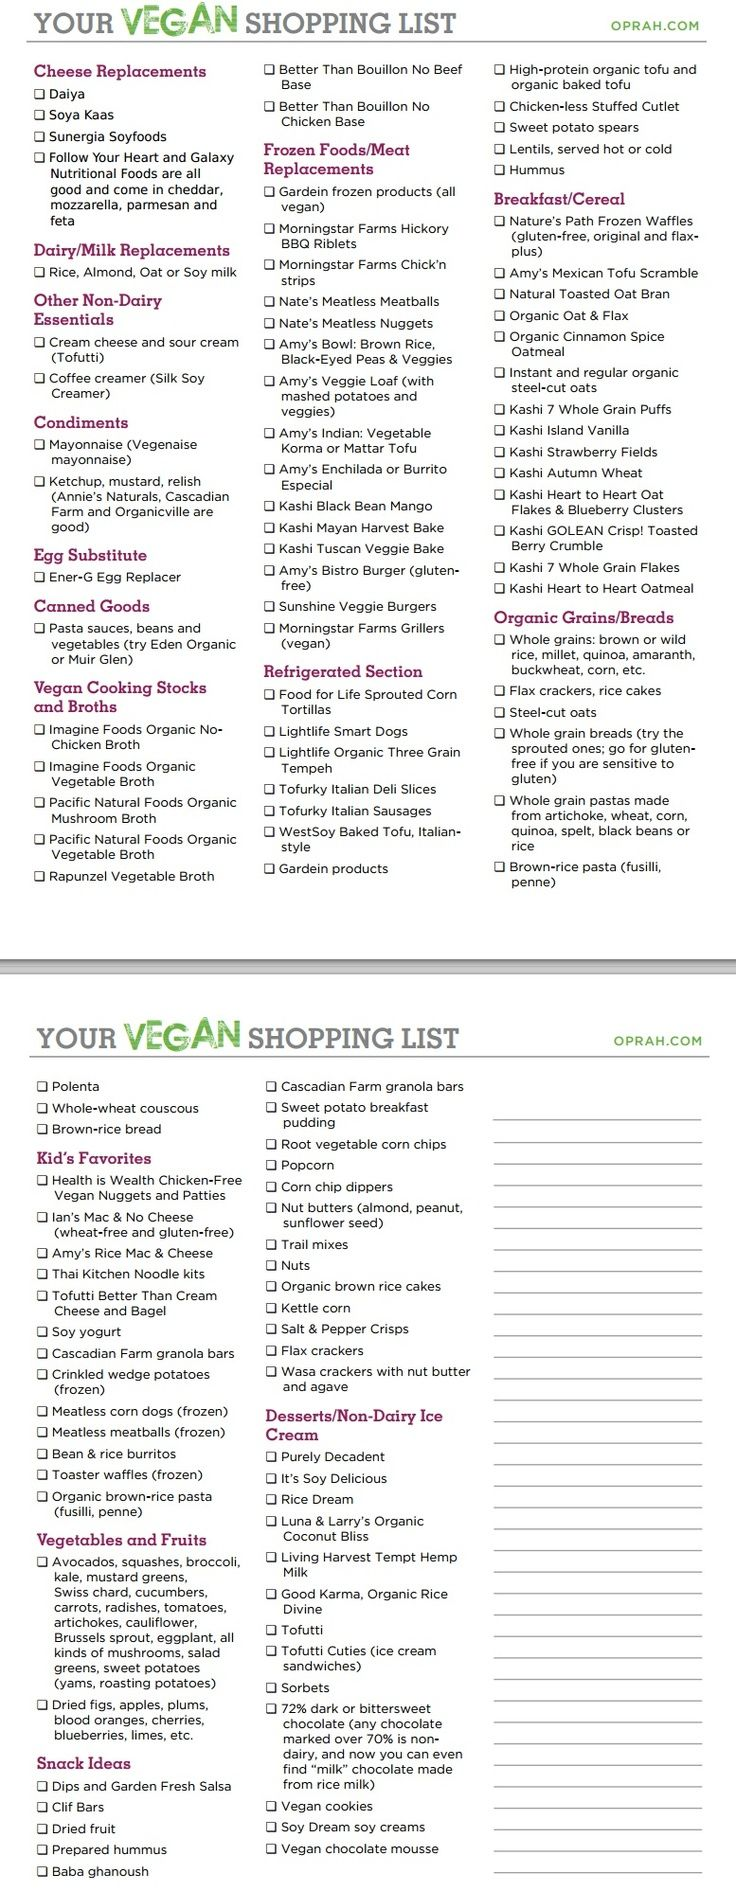 The Vegan Starter Grocery List -not vegan but good to know brands and food options that are for dinner guests that are.